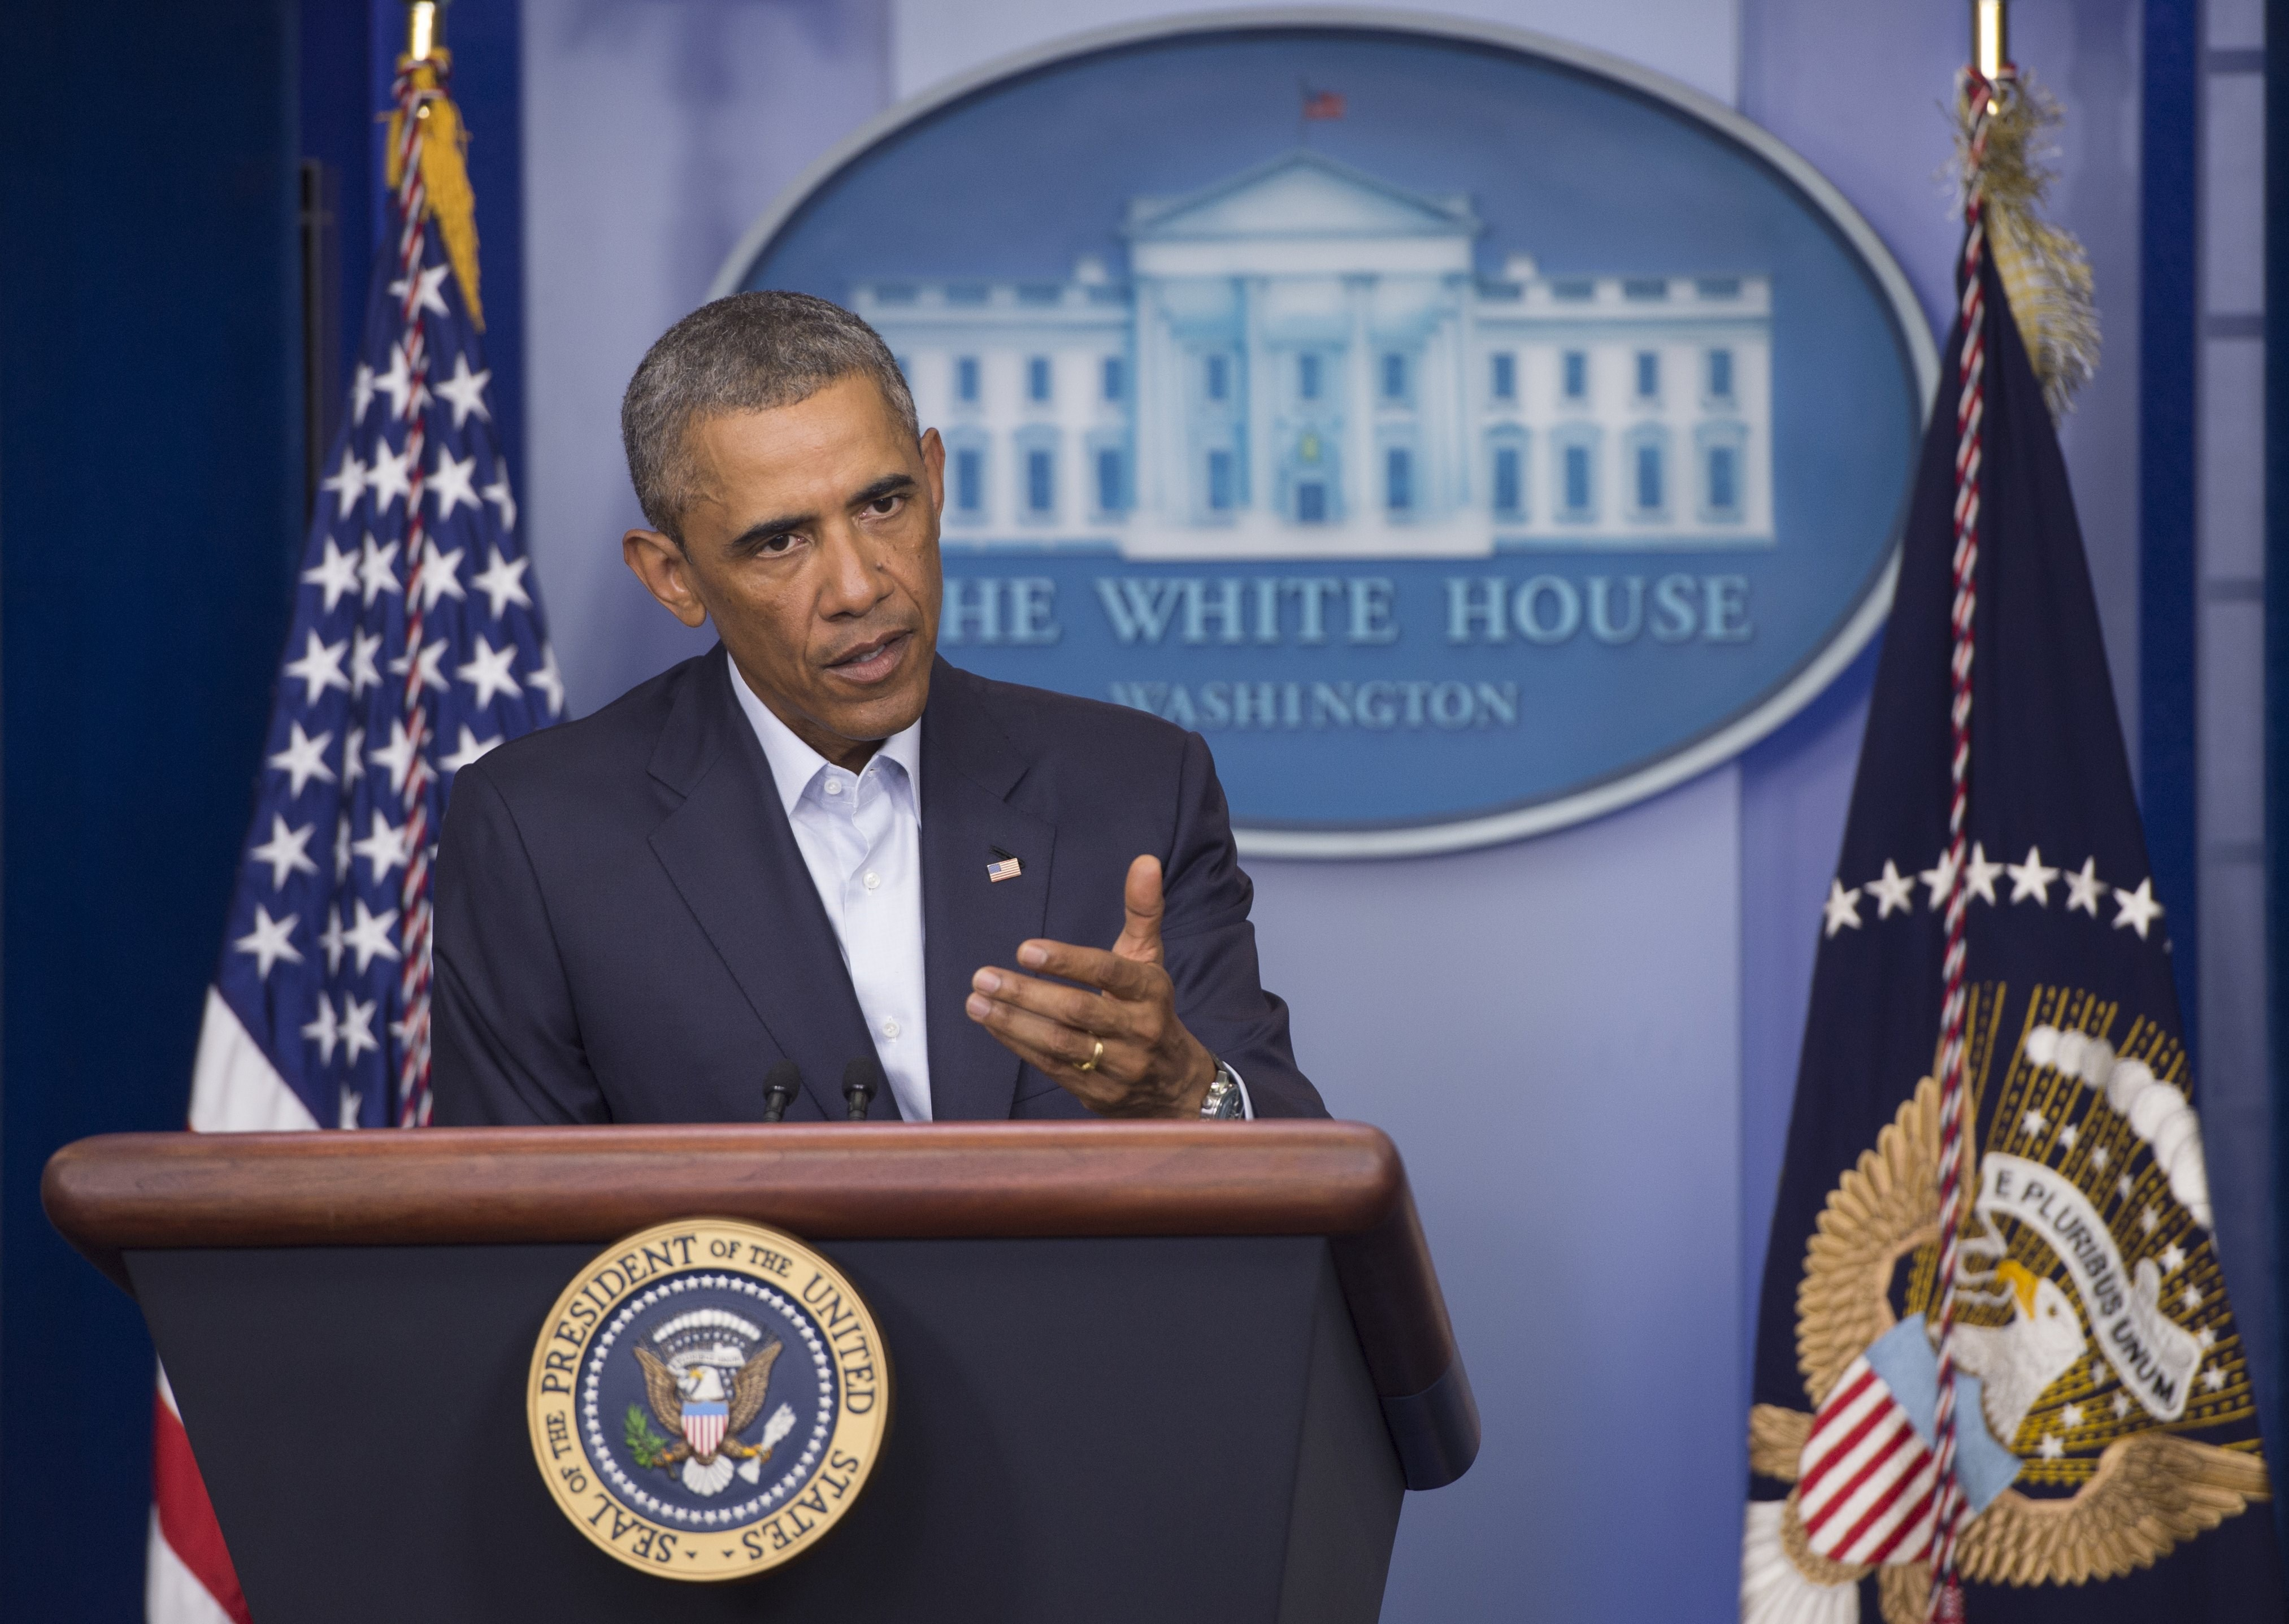 US President Barack Obama speaks about the US involvement in Iraq, as well as the situation in Ferguson, Missouri, in the Brady Press Briefing Room of the White House in Washington, DC, August 18, 2014.